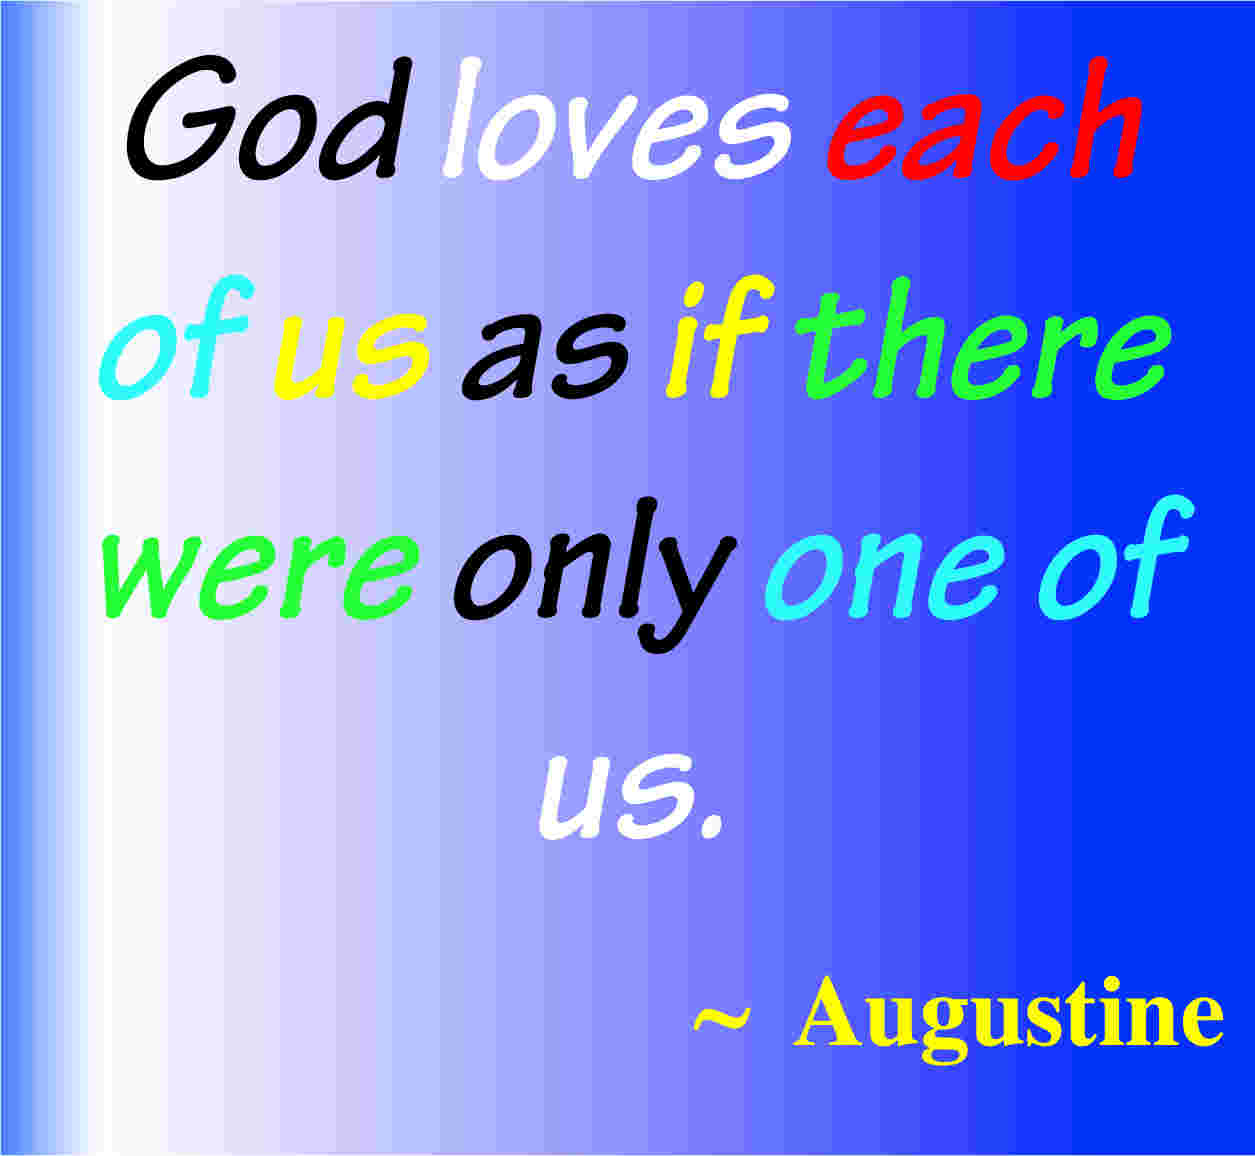 Bible Quotes On Love 20 Inspirational Bible Verses About God's Love